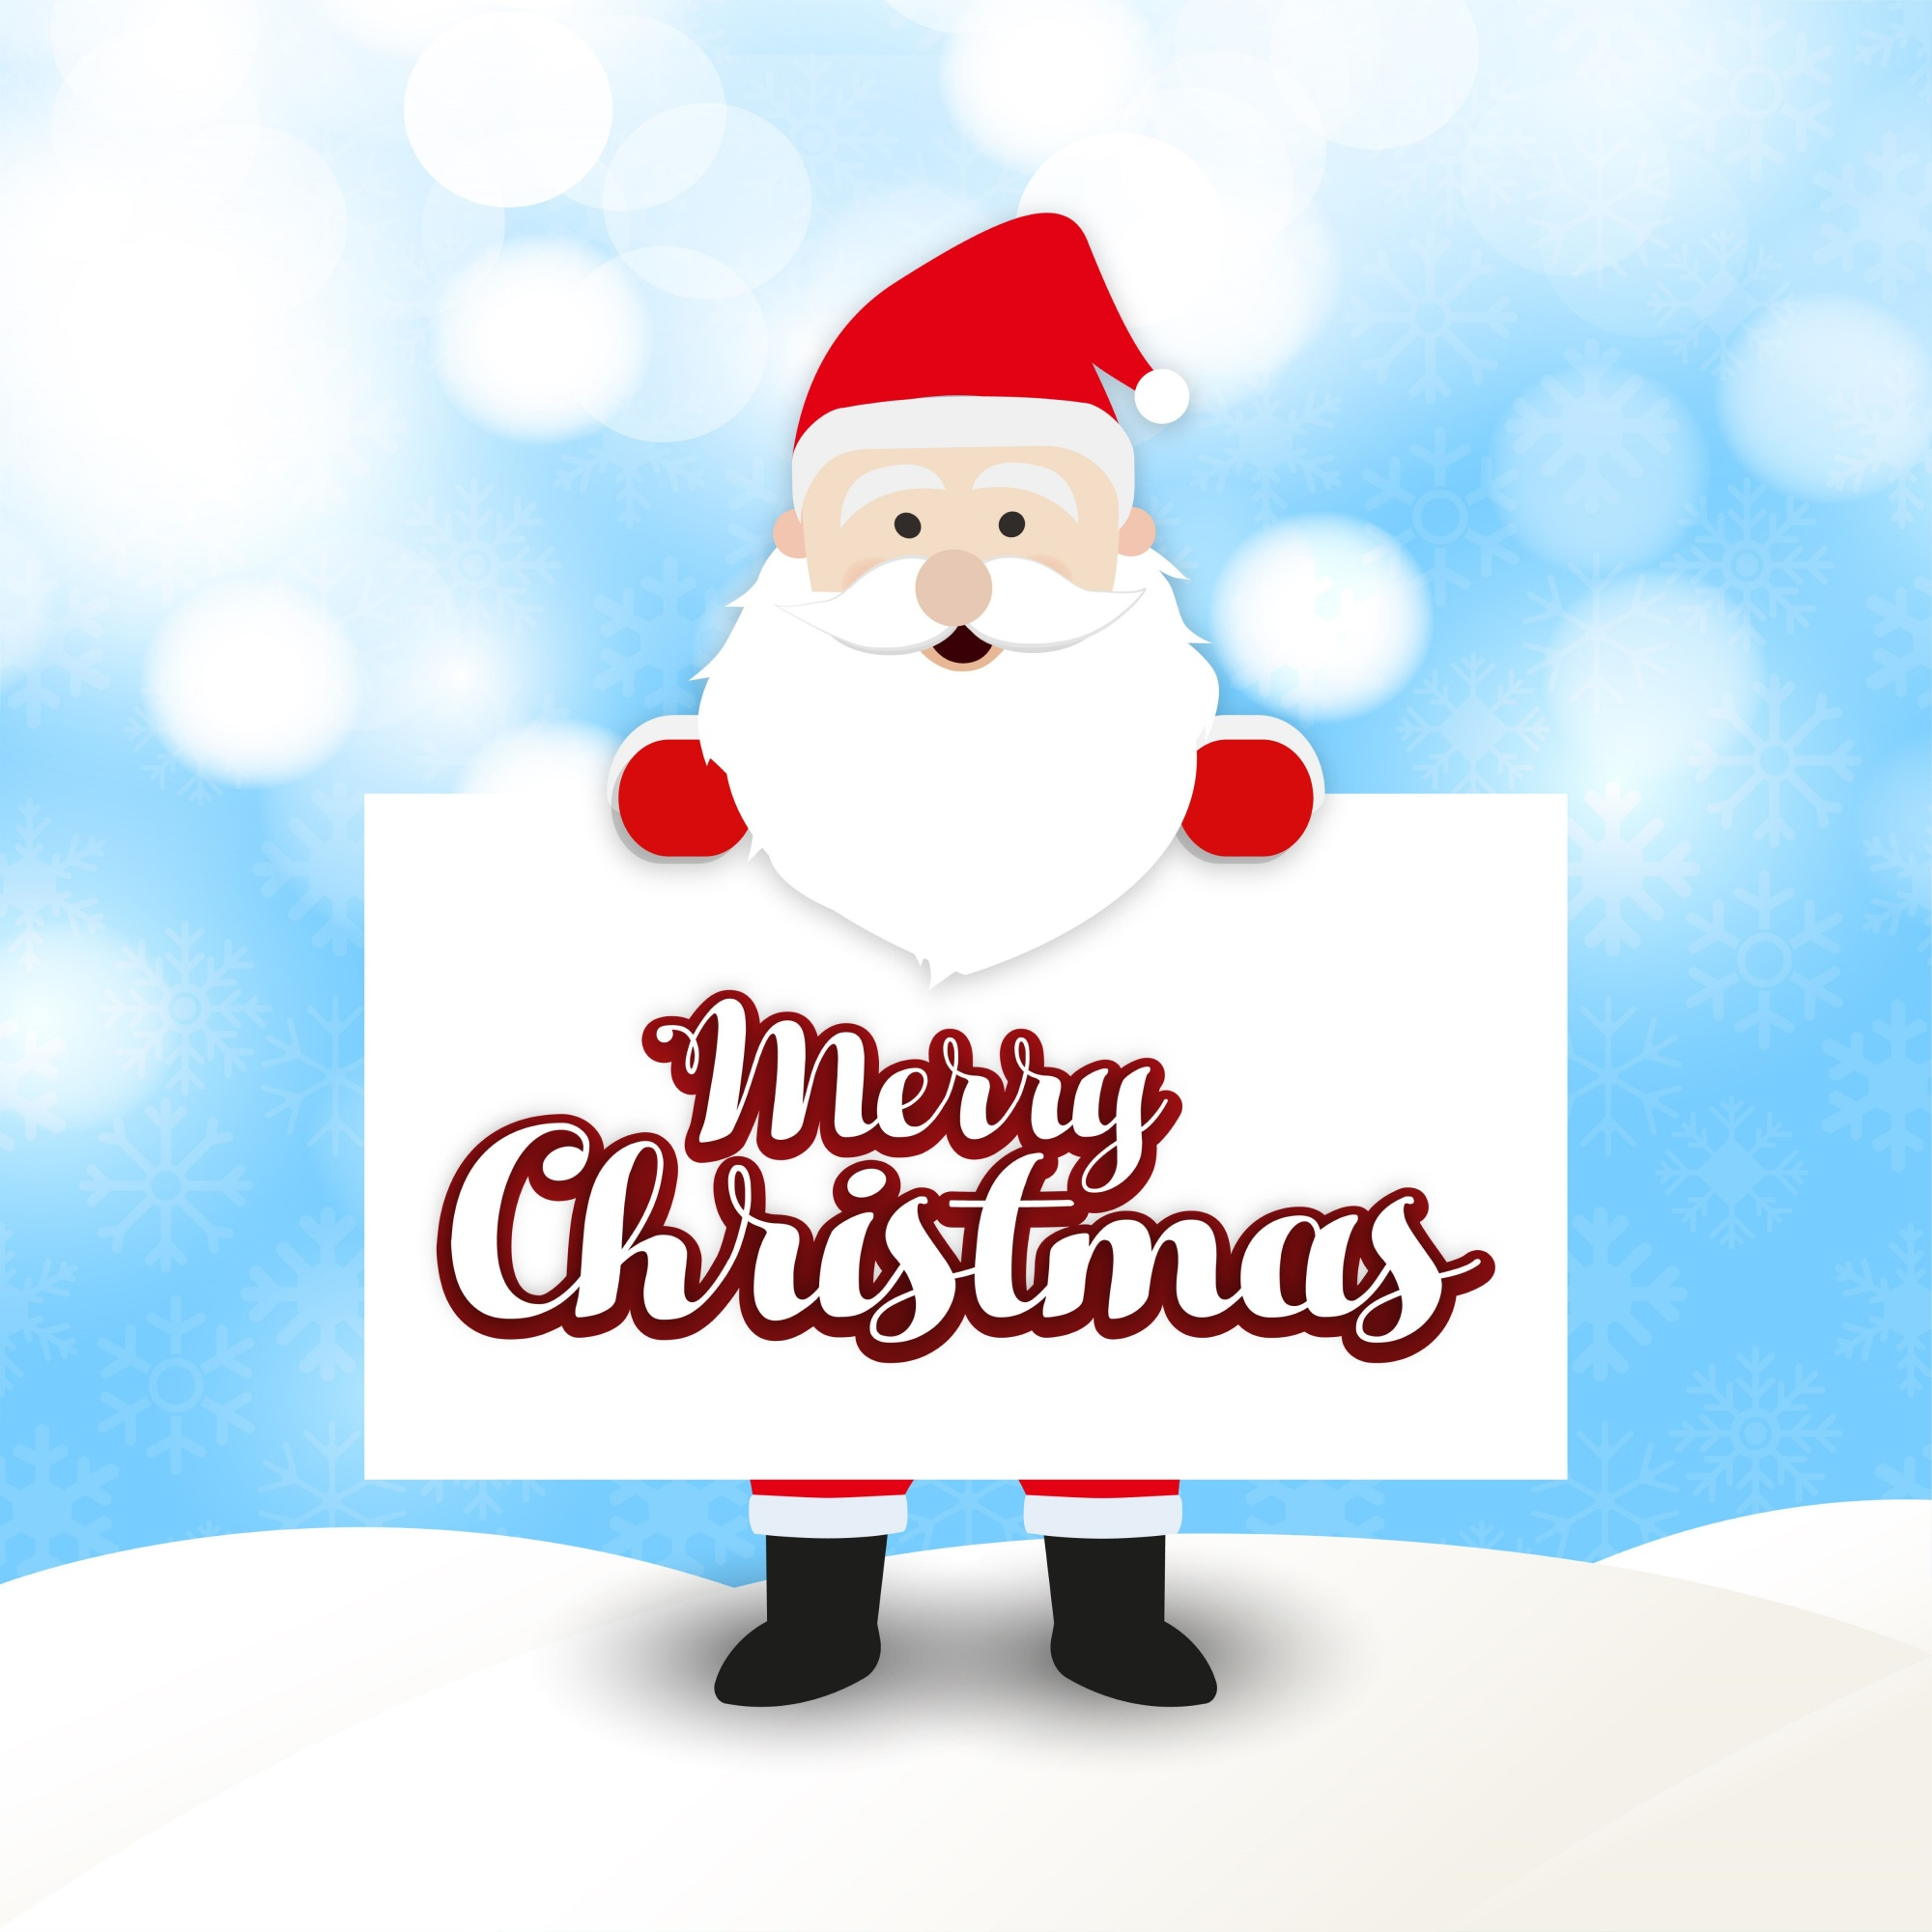 Christmas greetings card with santa clause